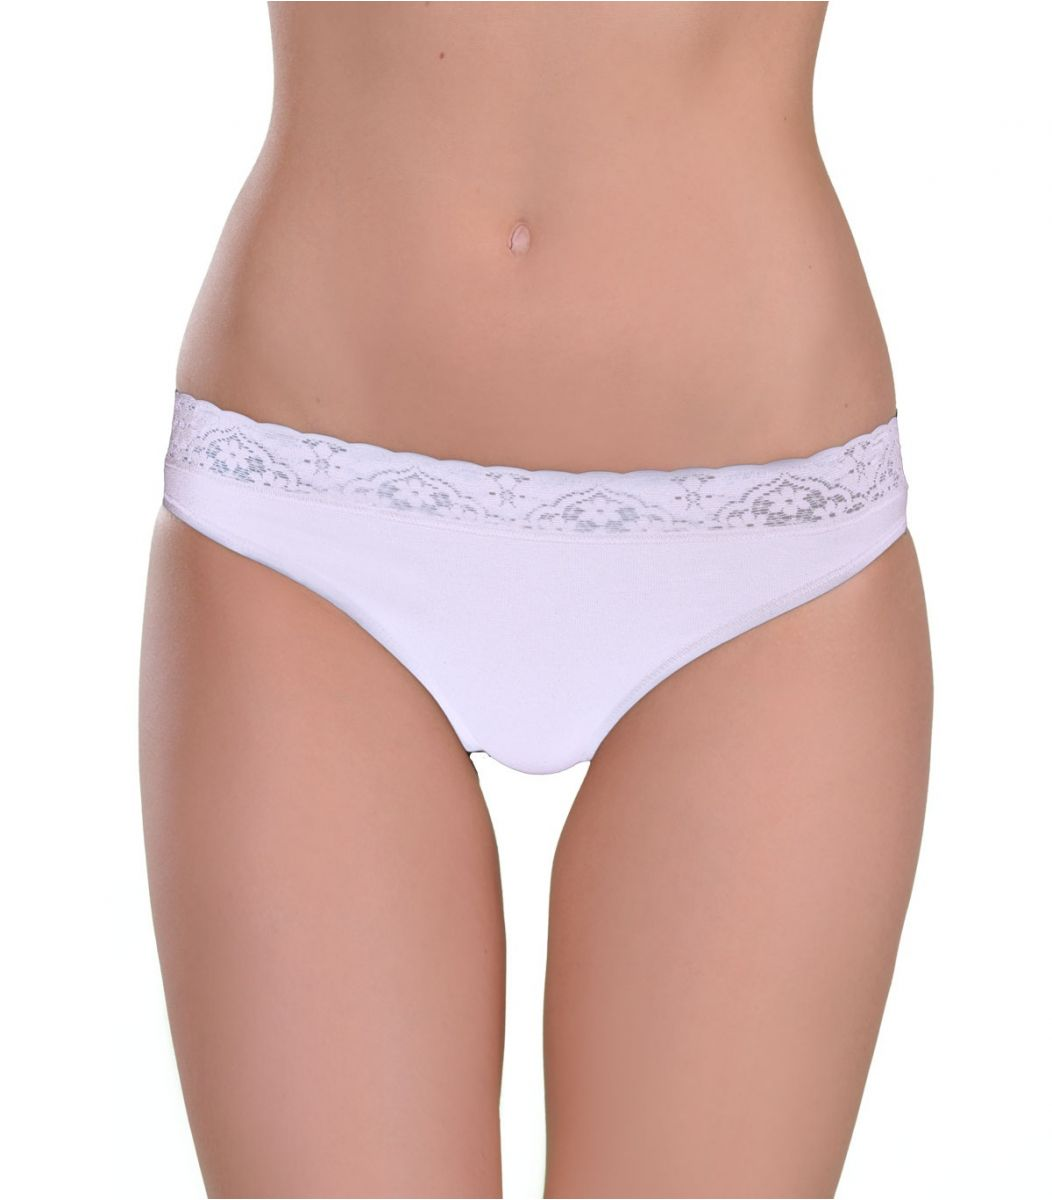 Panty brazil, rubber-lace, white